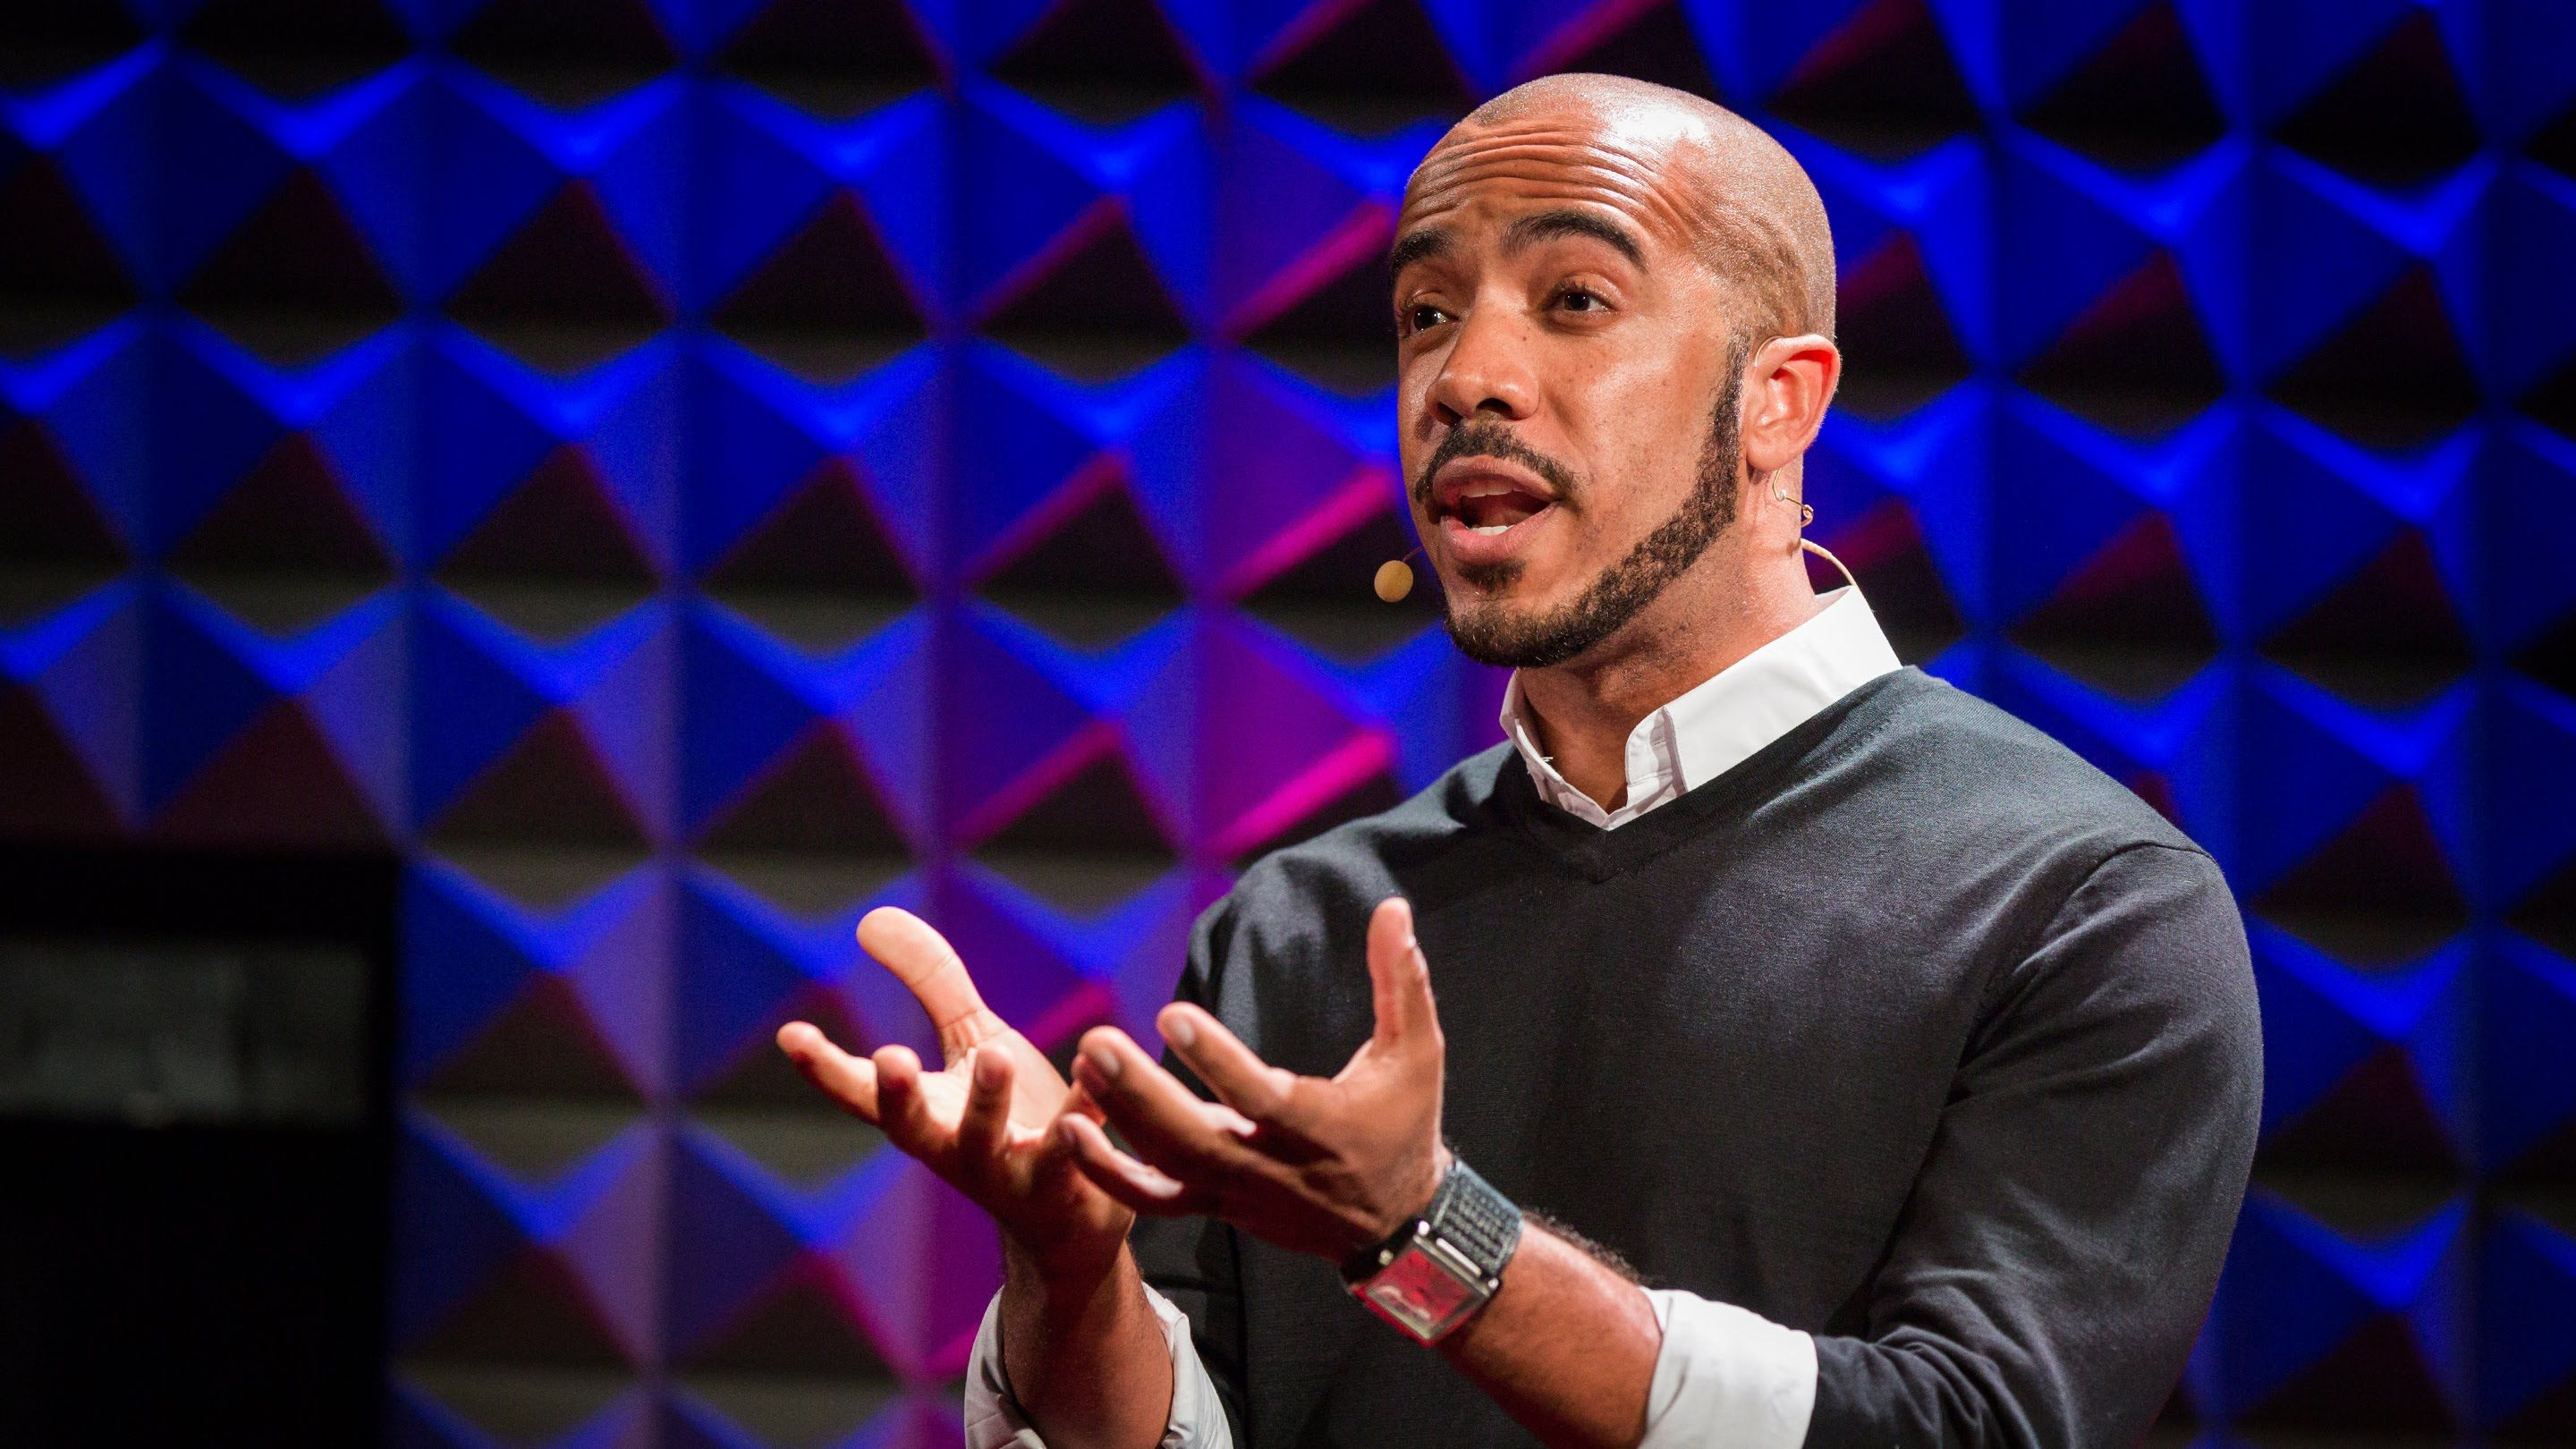 Clint Smith The Danger Of Silence All That Is Necessary For The Triumph Of Evil Is That Good Men Do Nothing Clint Smith Ted Talks Public Speaking